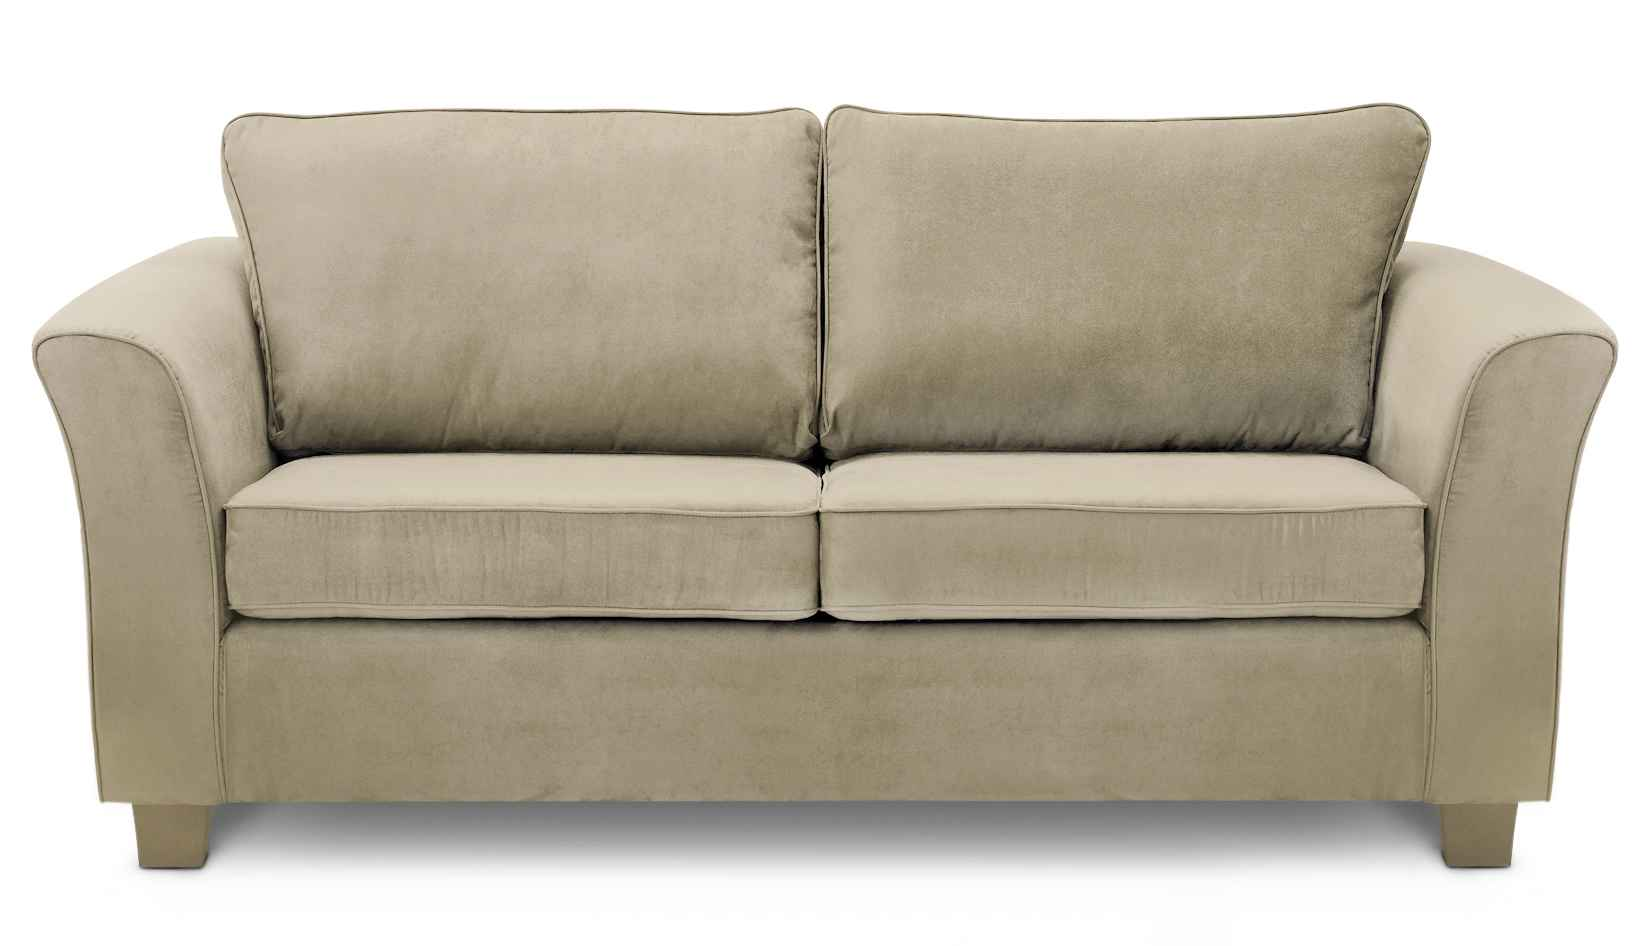 Overstock leather couches feel the home Fabric sofas and loveseats